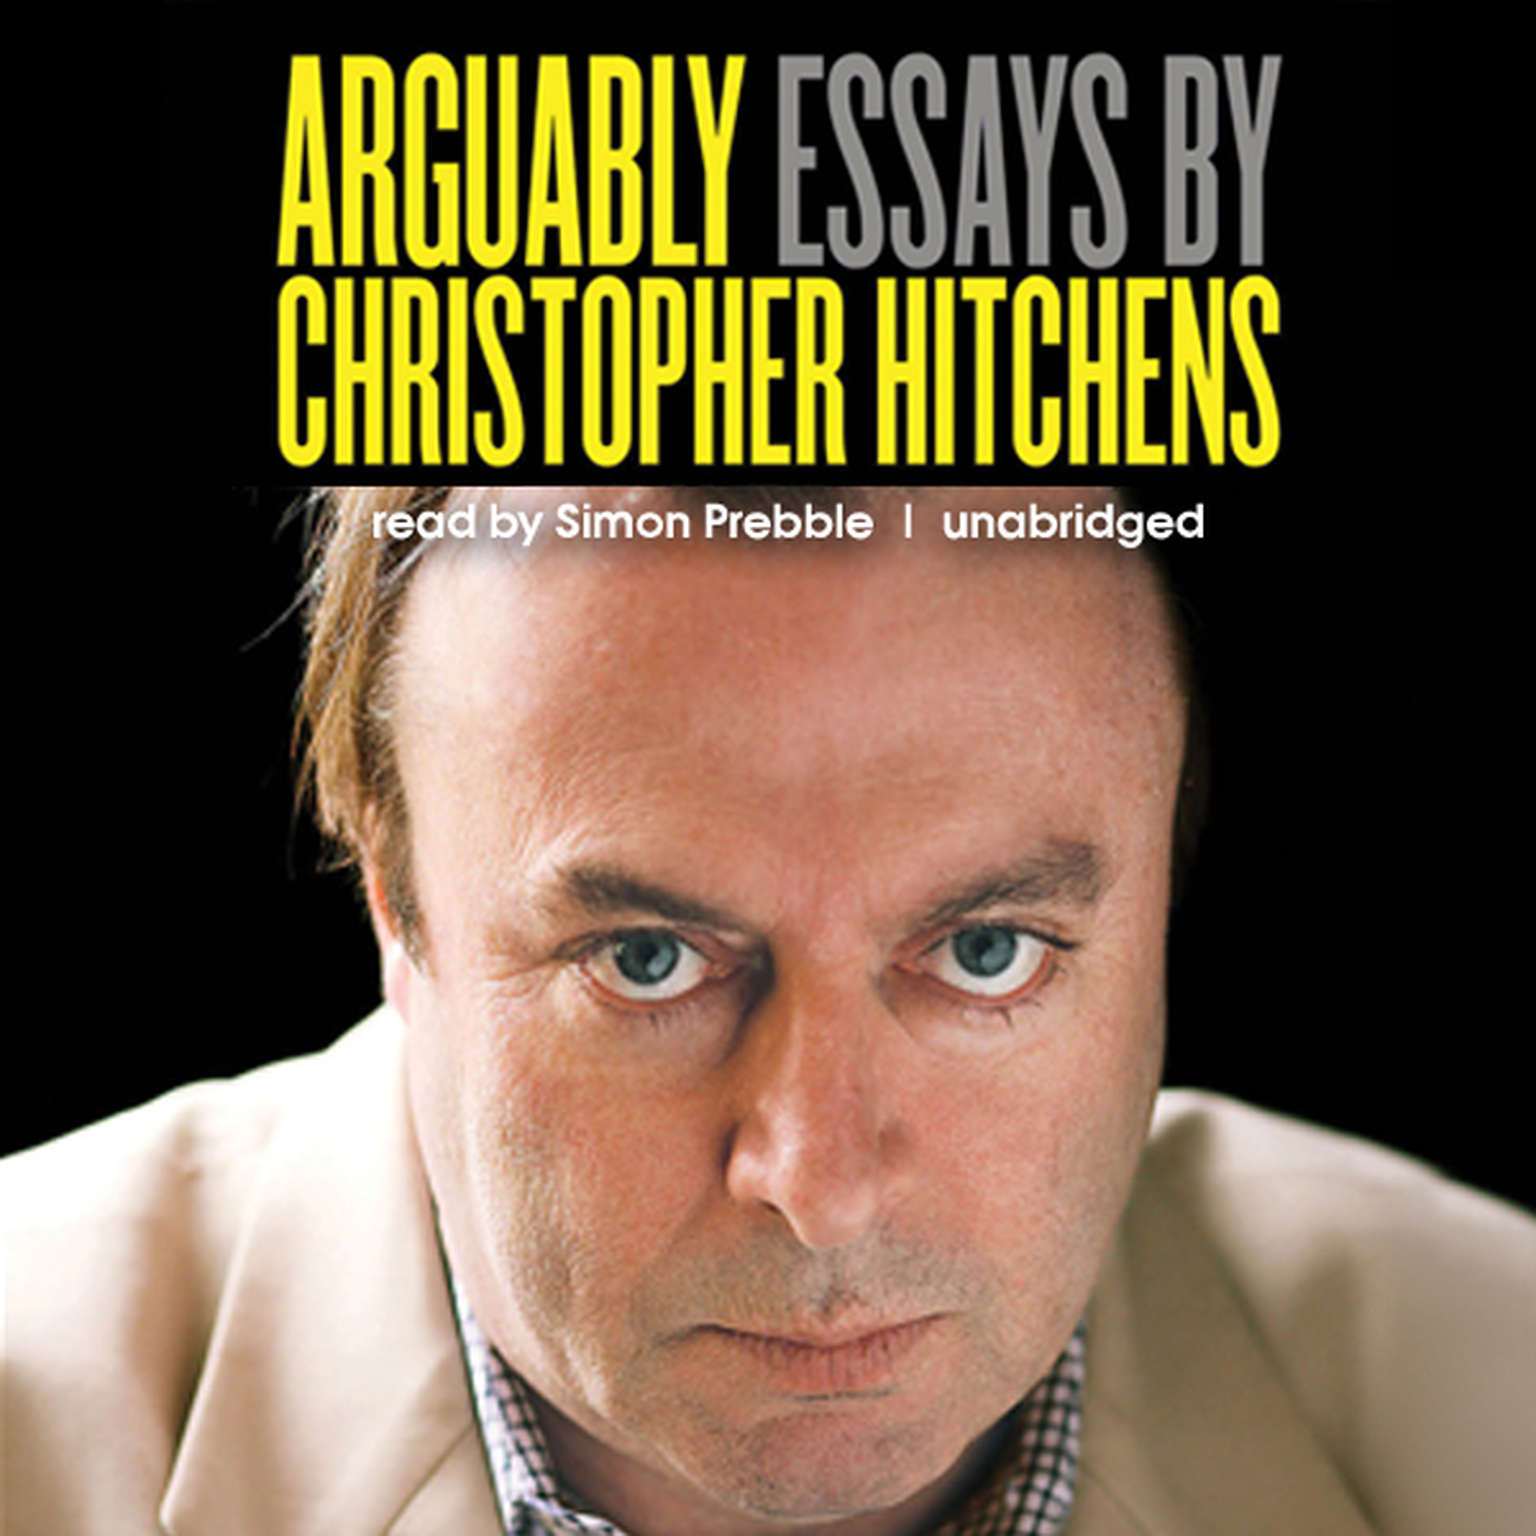 arguably essays by christopher hitchens release date Christopher hitchens, who died last month at the grand old age of 62, was a remarkable british-american journalist/polemicist, who wrote acerbic, and yet, highly insightful essays which challenged the intellect of even his most.